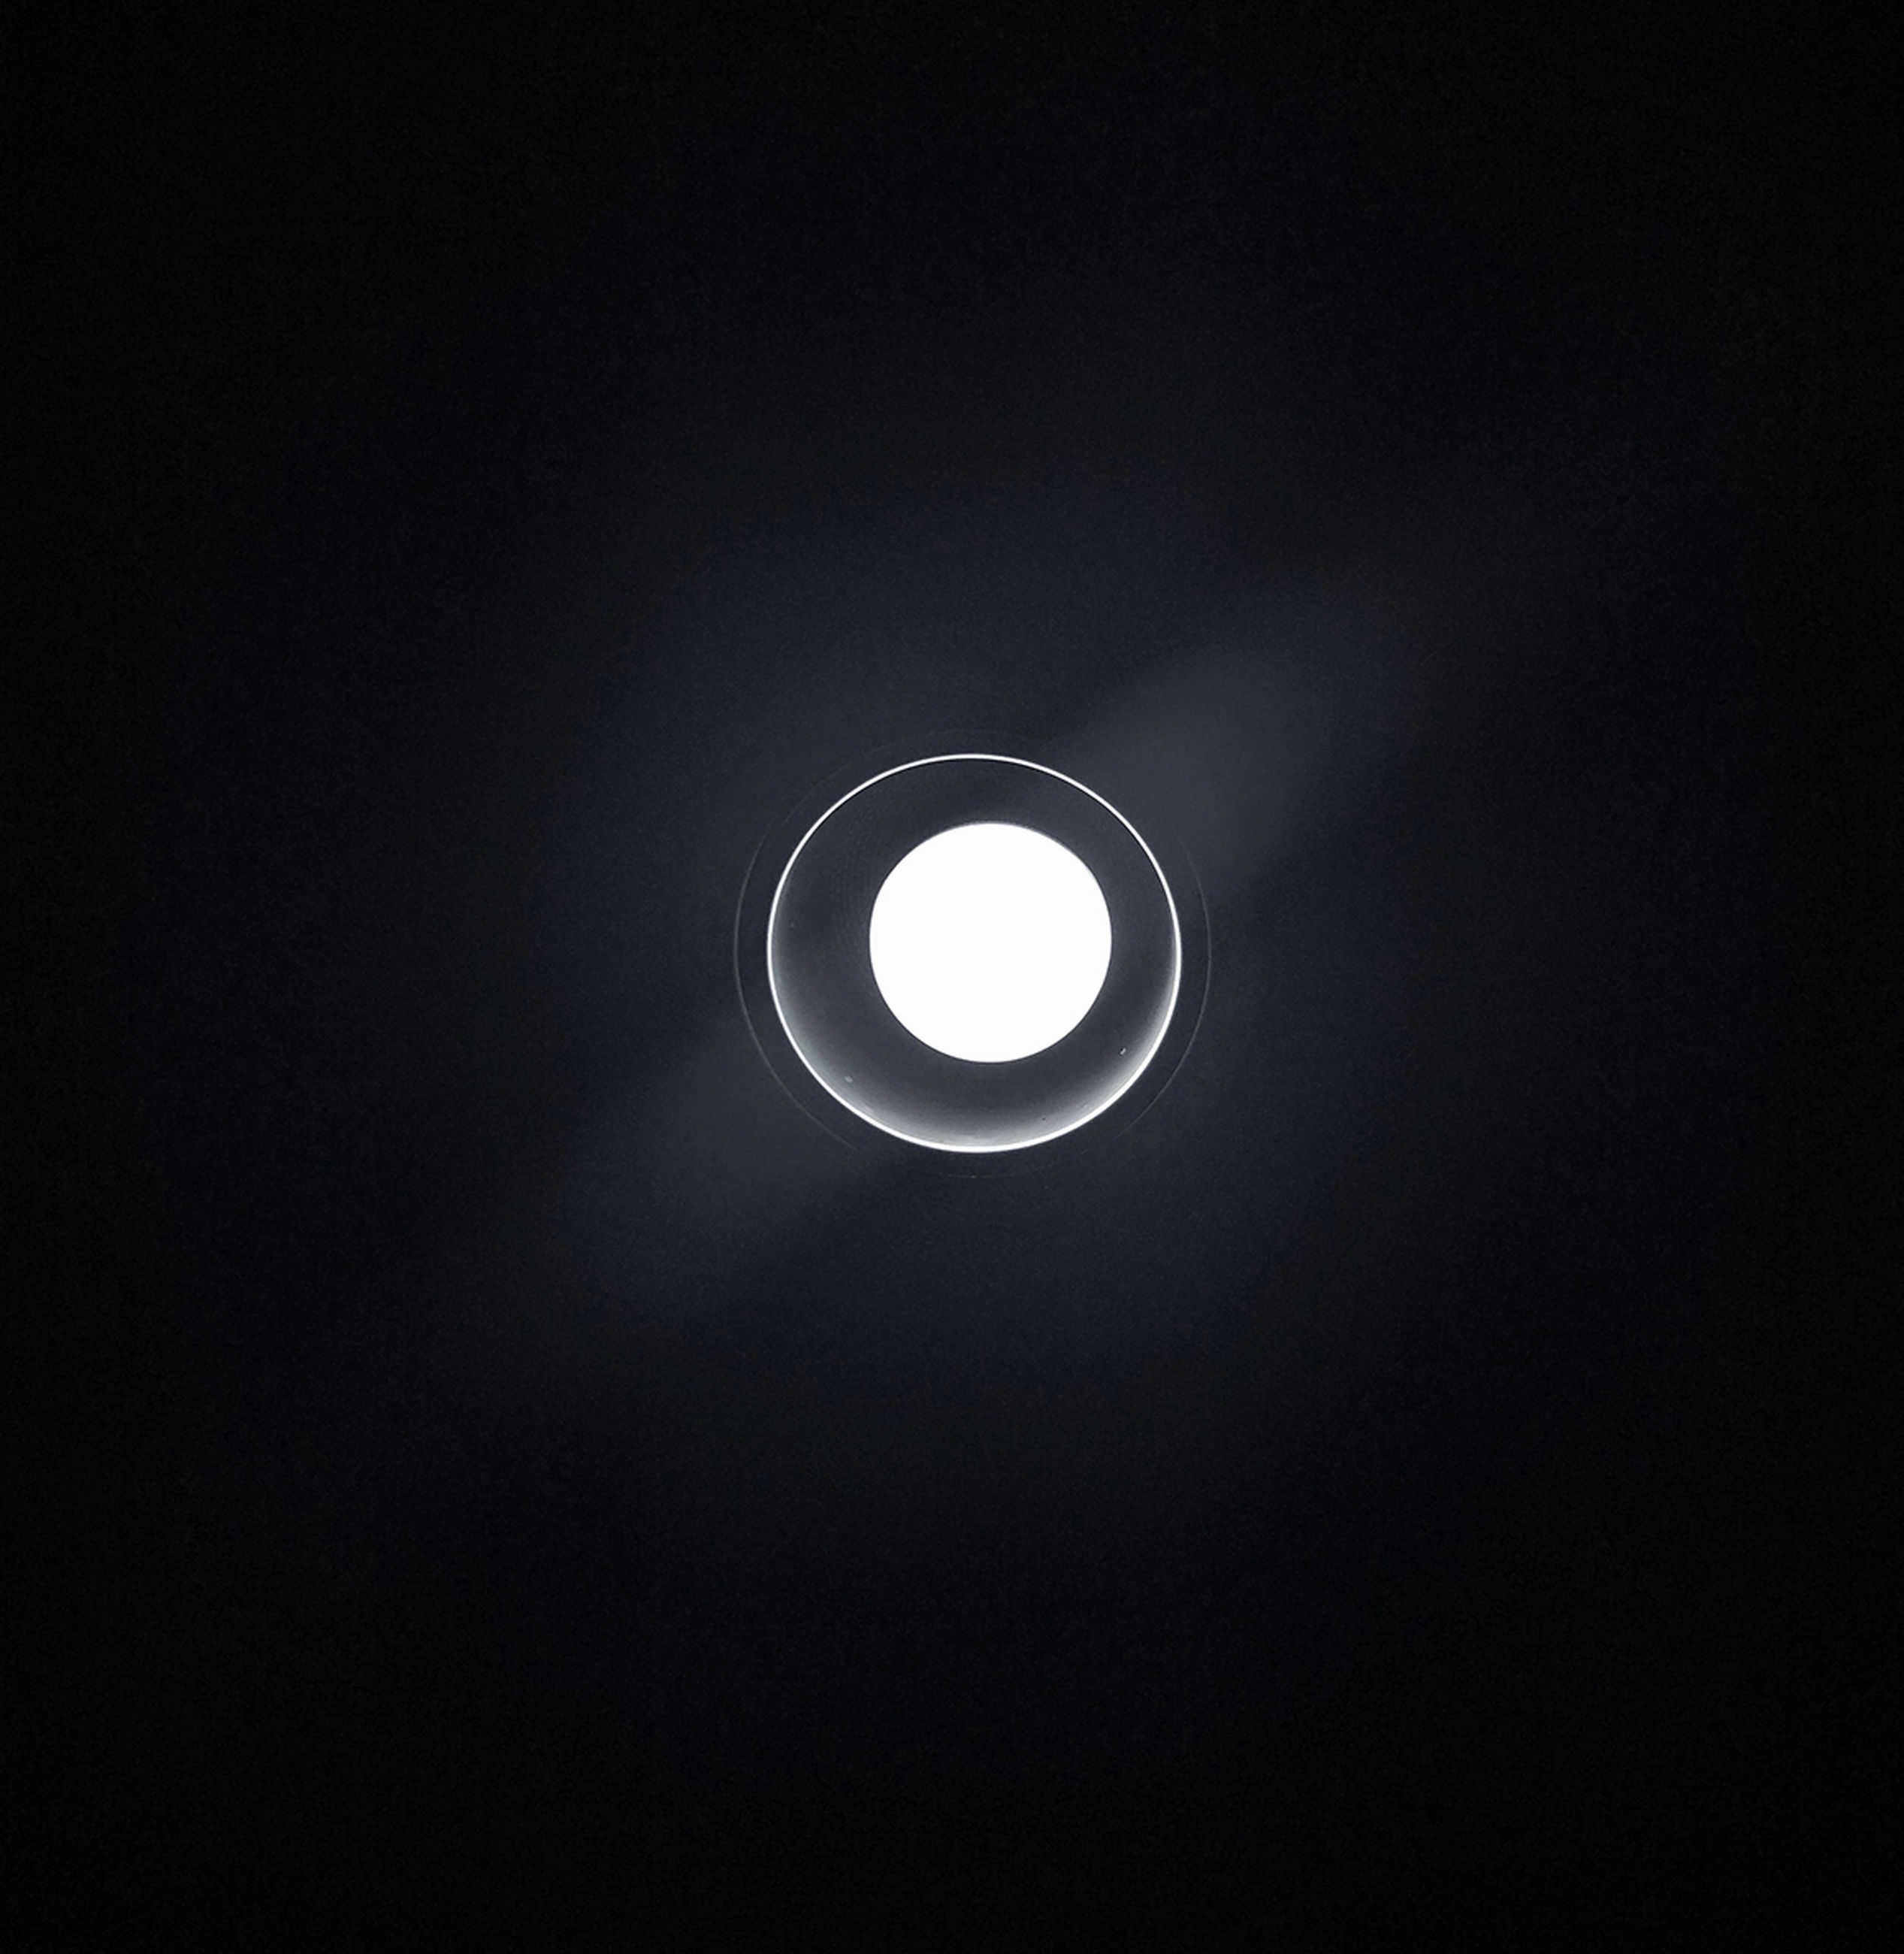 low angle view, black background, no people, electricity, night, astronomy, illuminated, sky, indoors, nature, solar eclipse